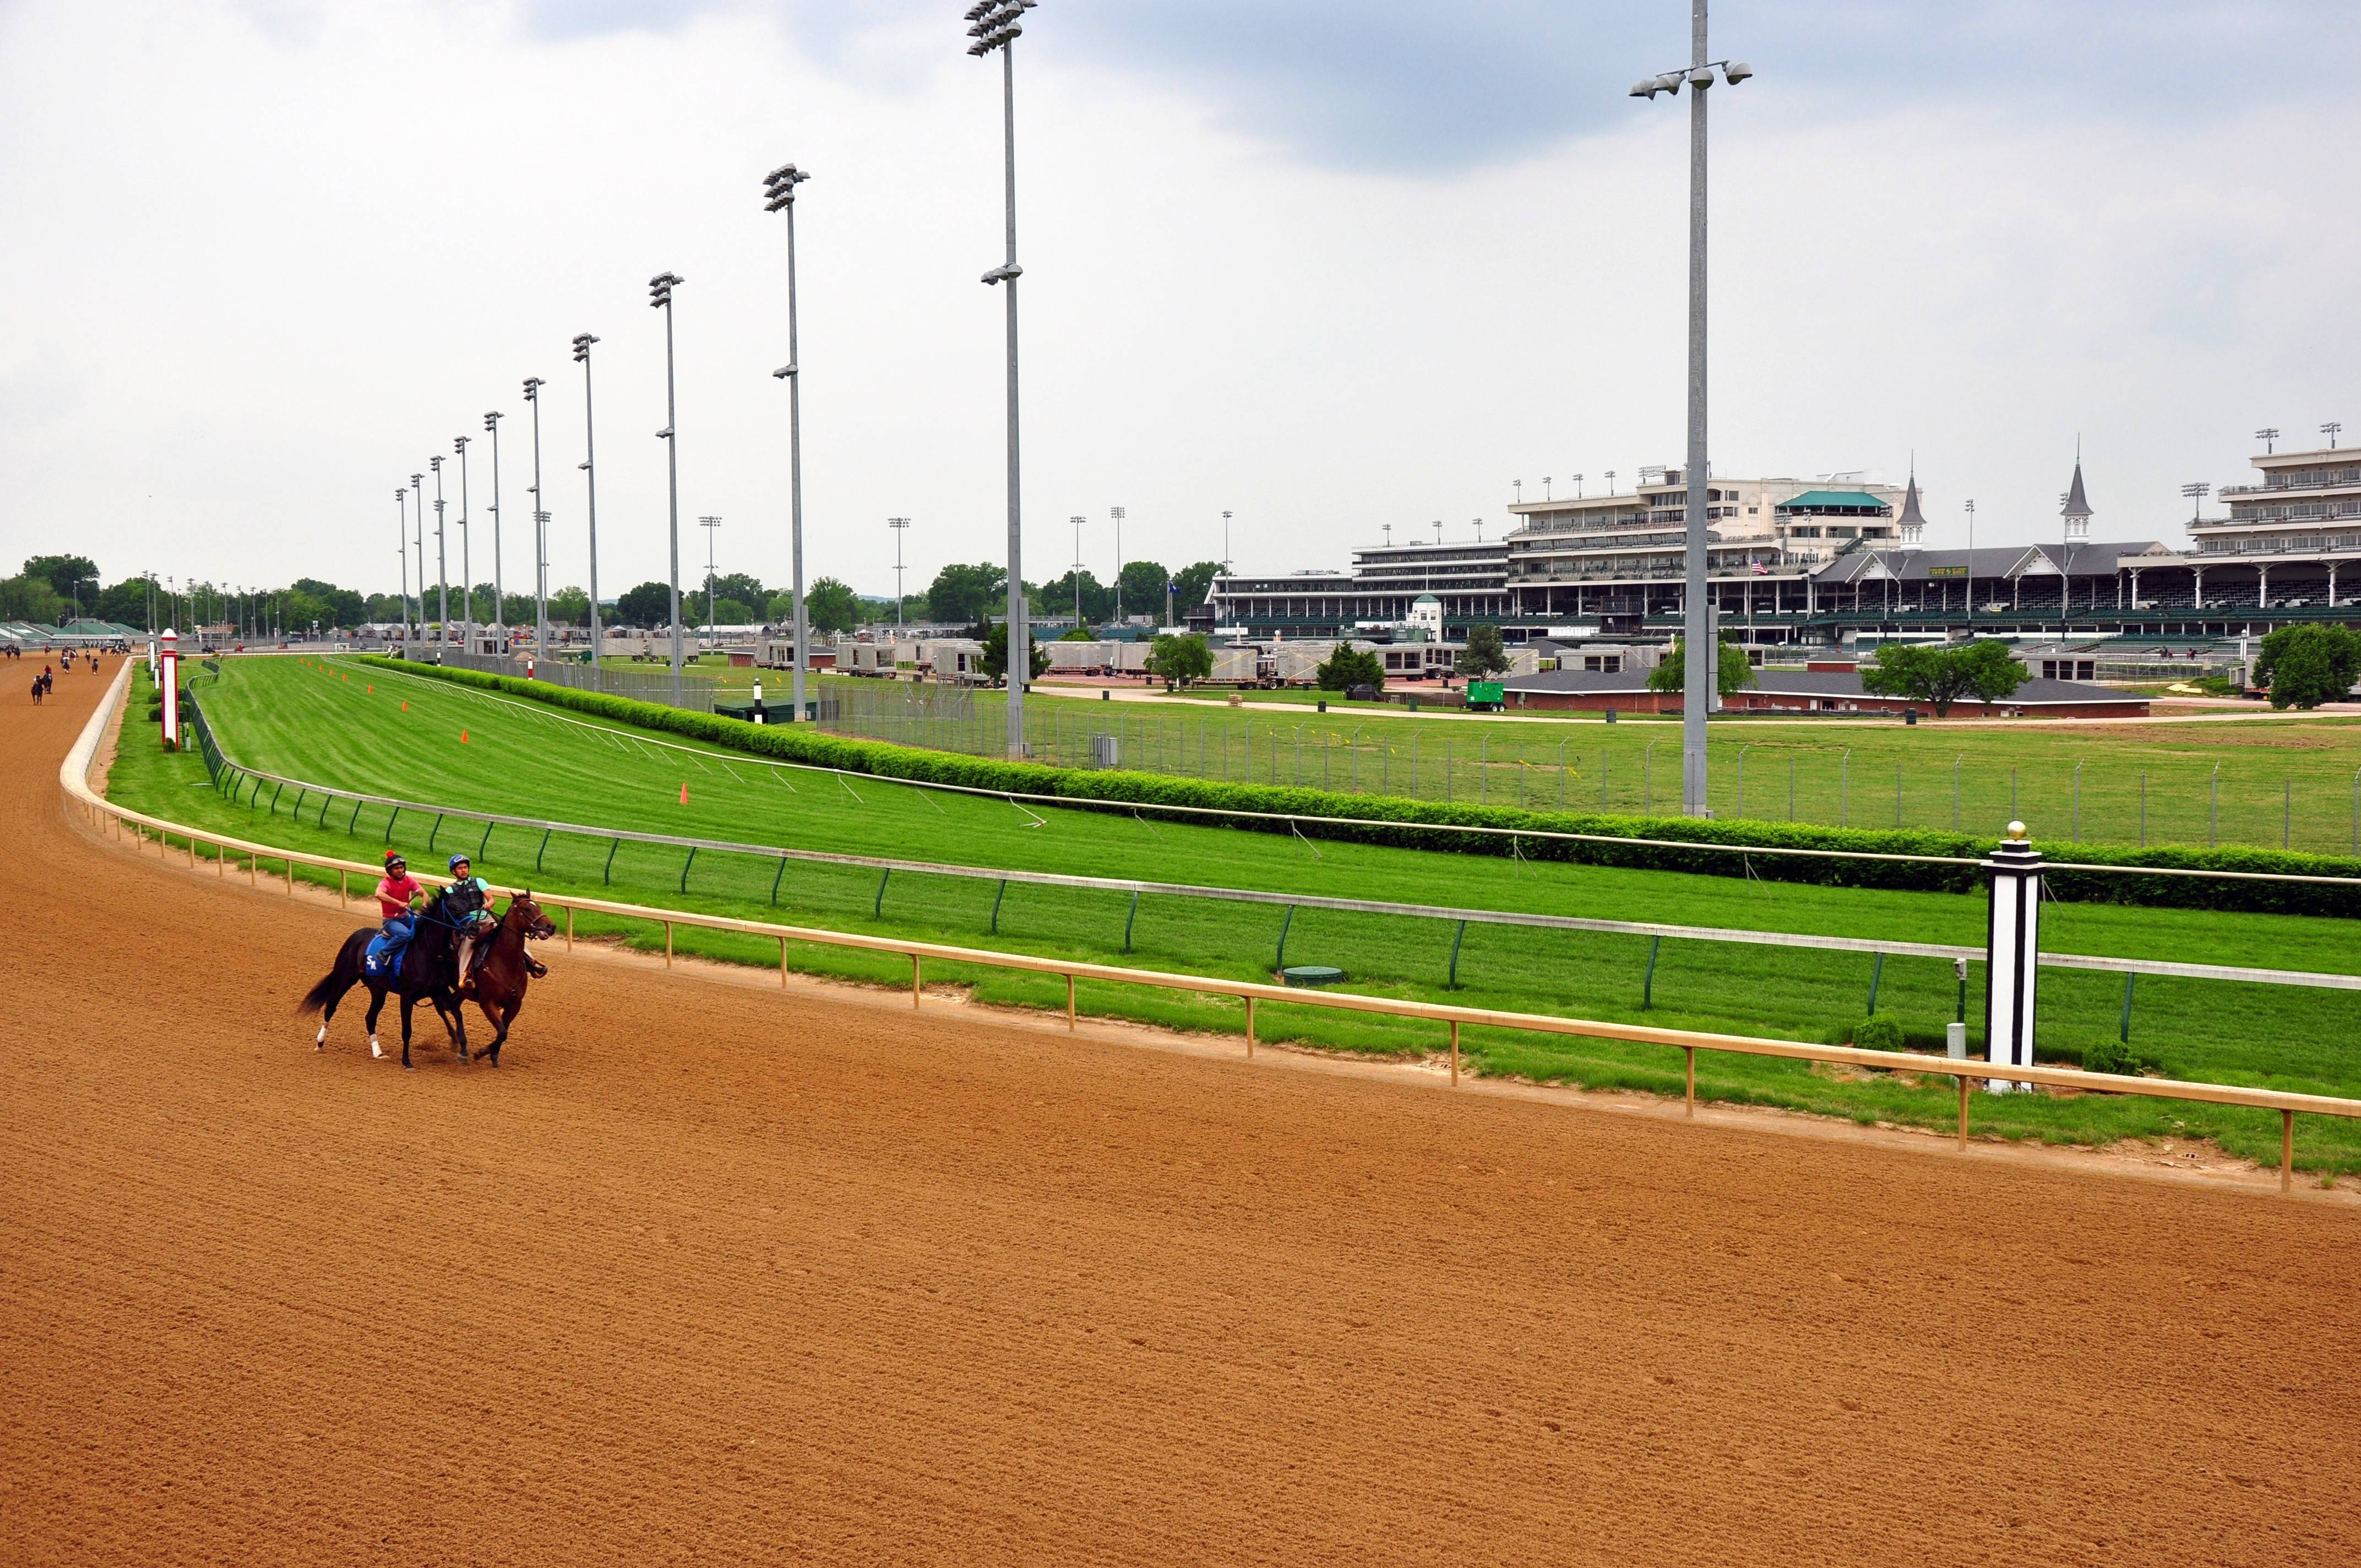 Visitors on the Barn and Backside tour at Churchill Downs may see horses warming up on the track if they choose an early morning tour.